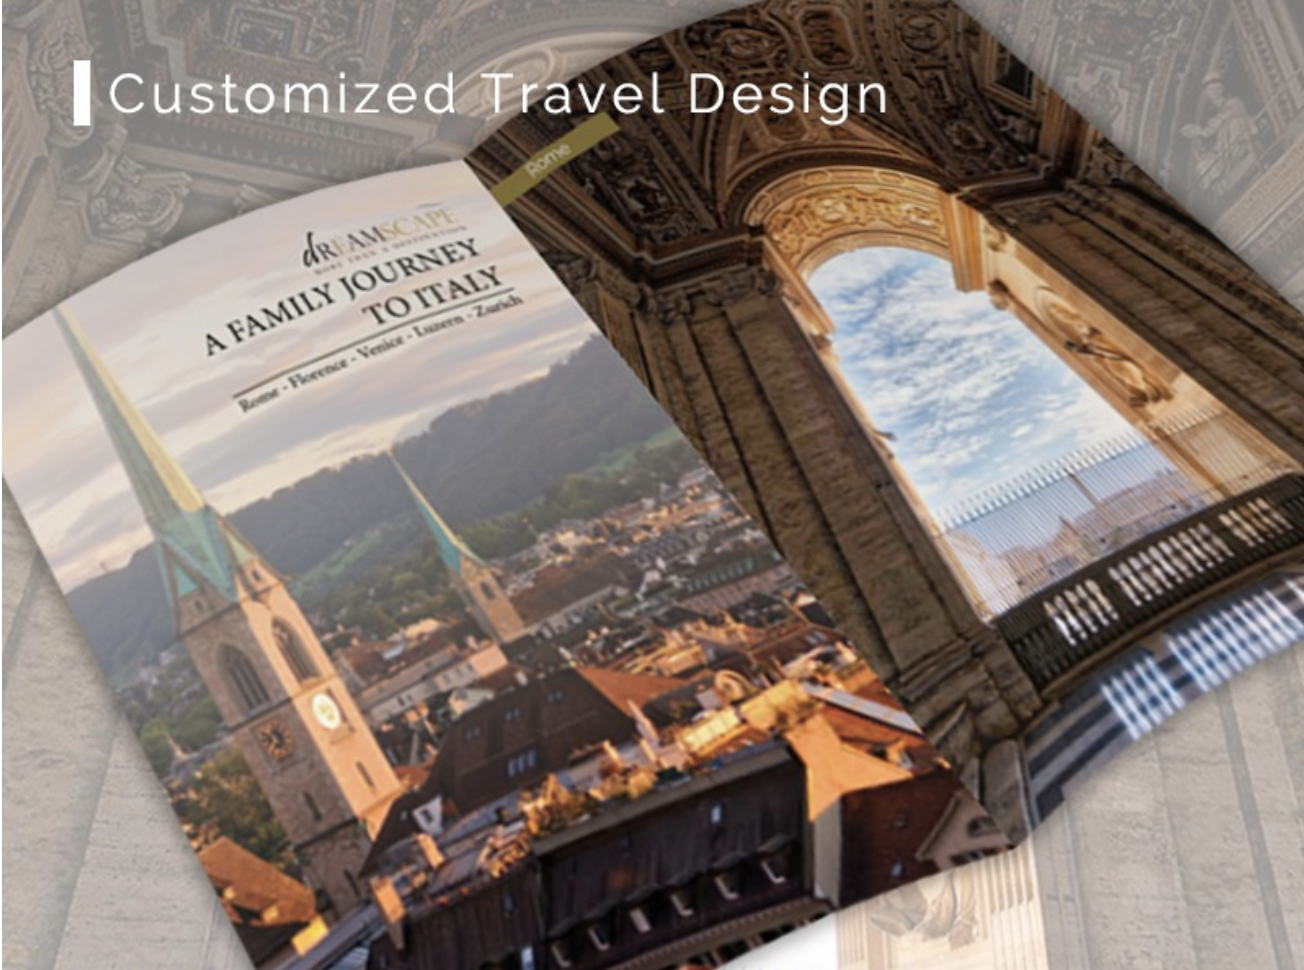 Customized Travel Design